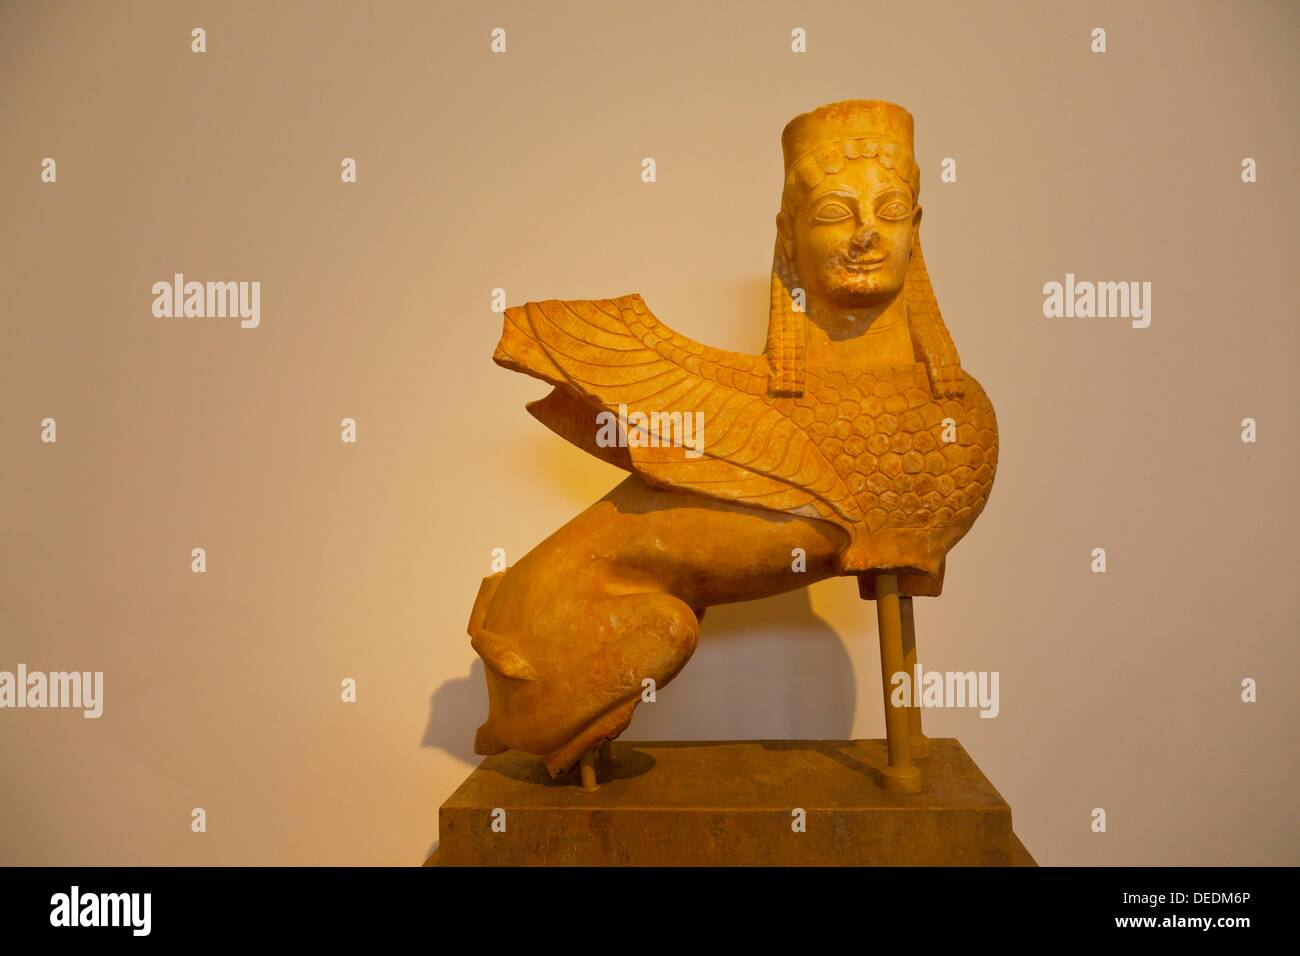 Archaic sphinx, National Archaeological Museum, Athens, Greece - Stock Image